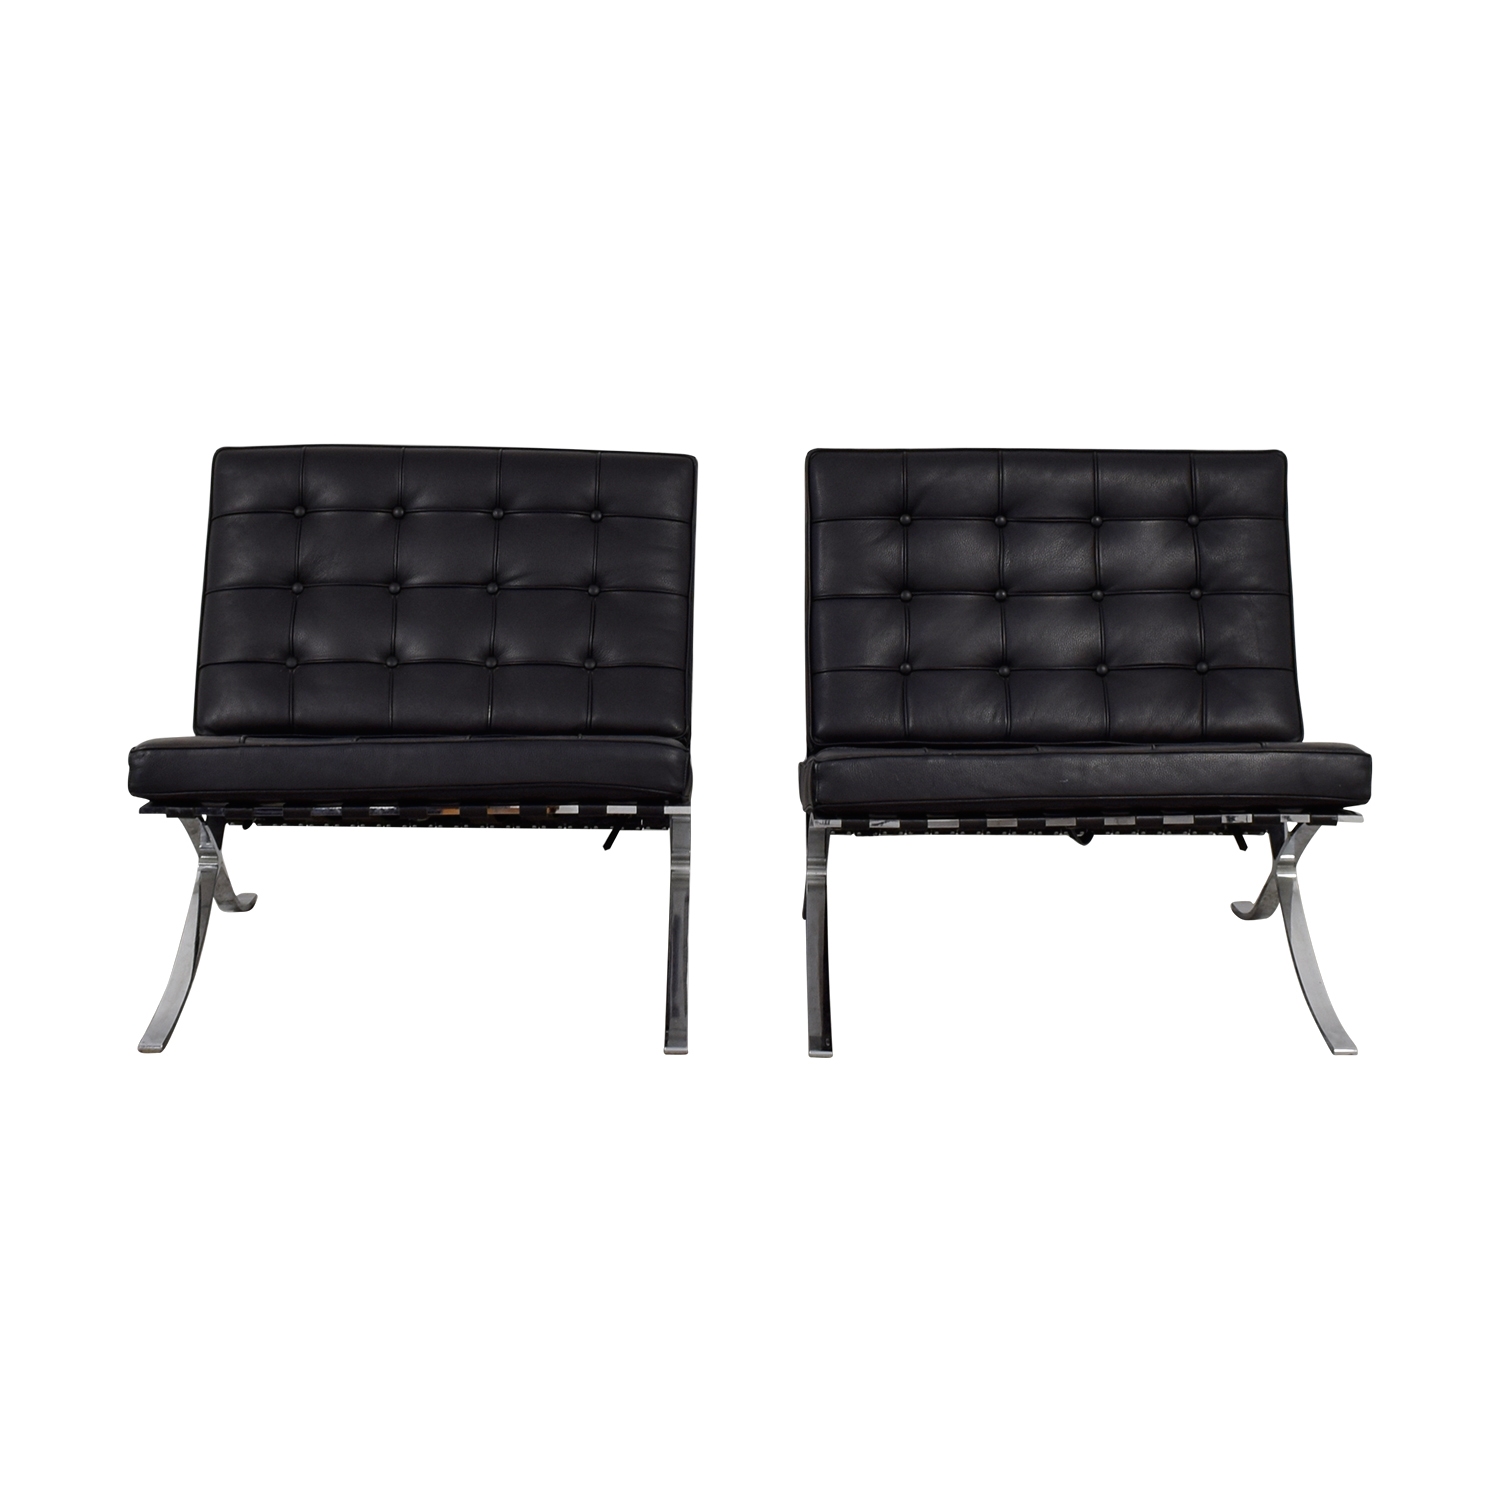 buy  Black and Chrome Tufted Barcelona Style Accent Chairs online